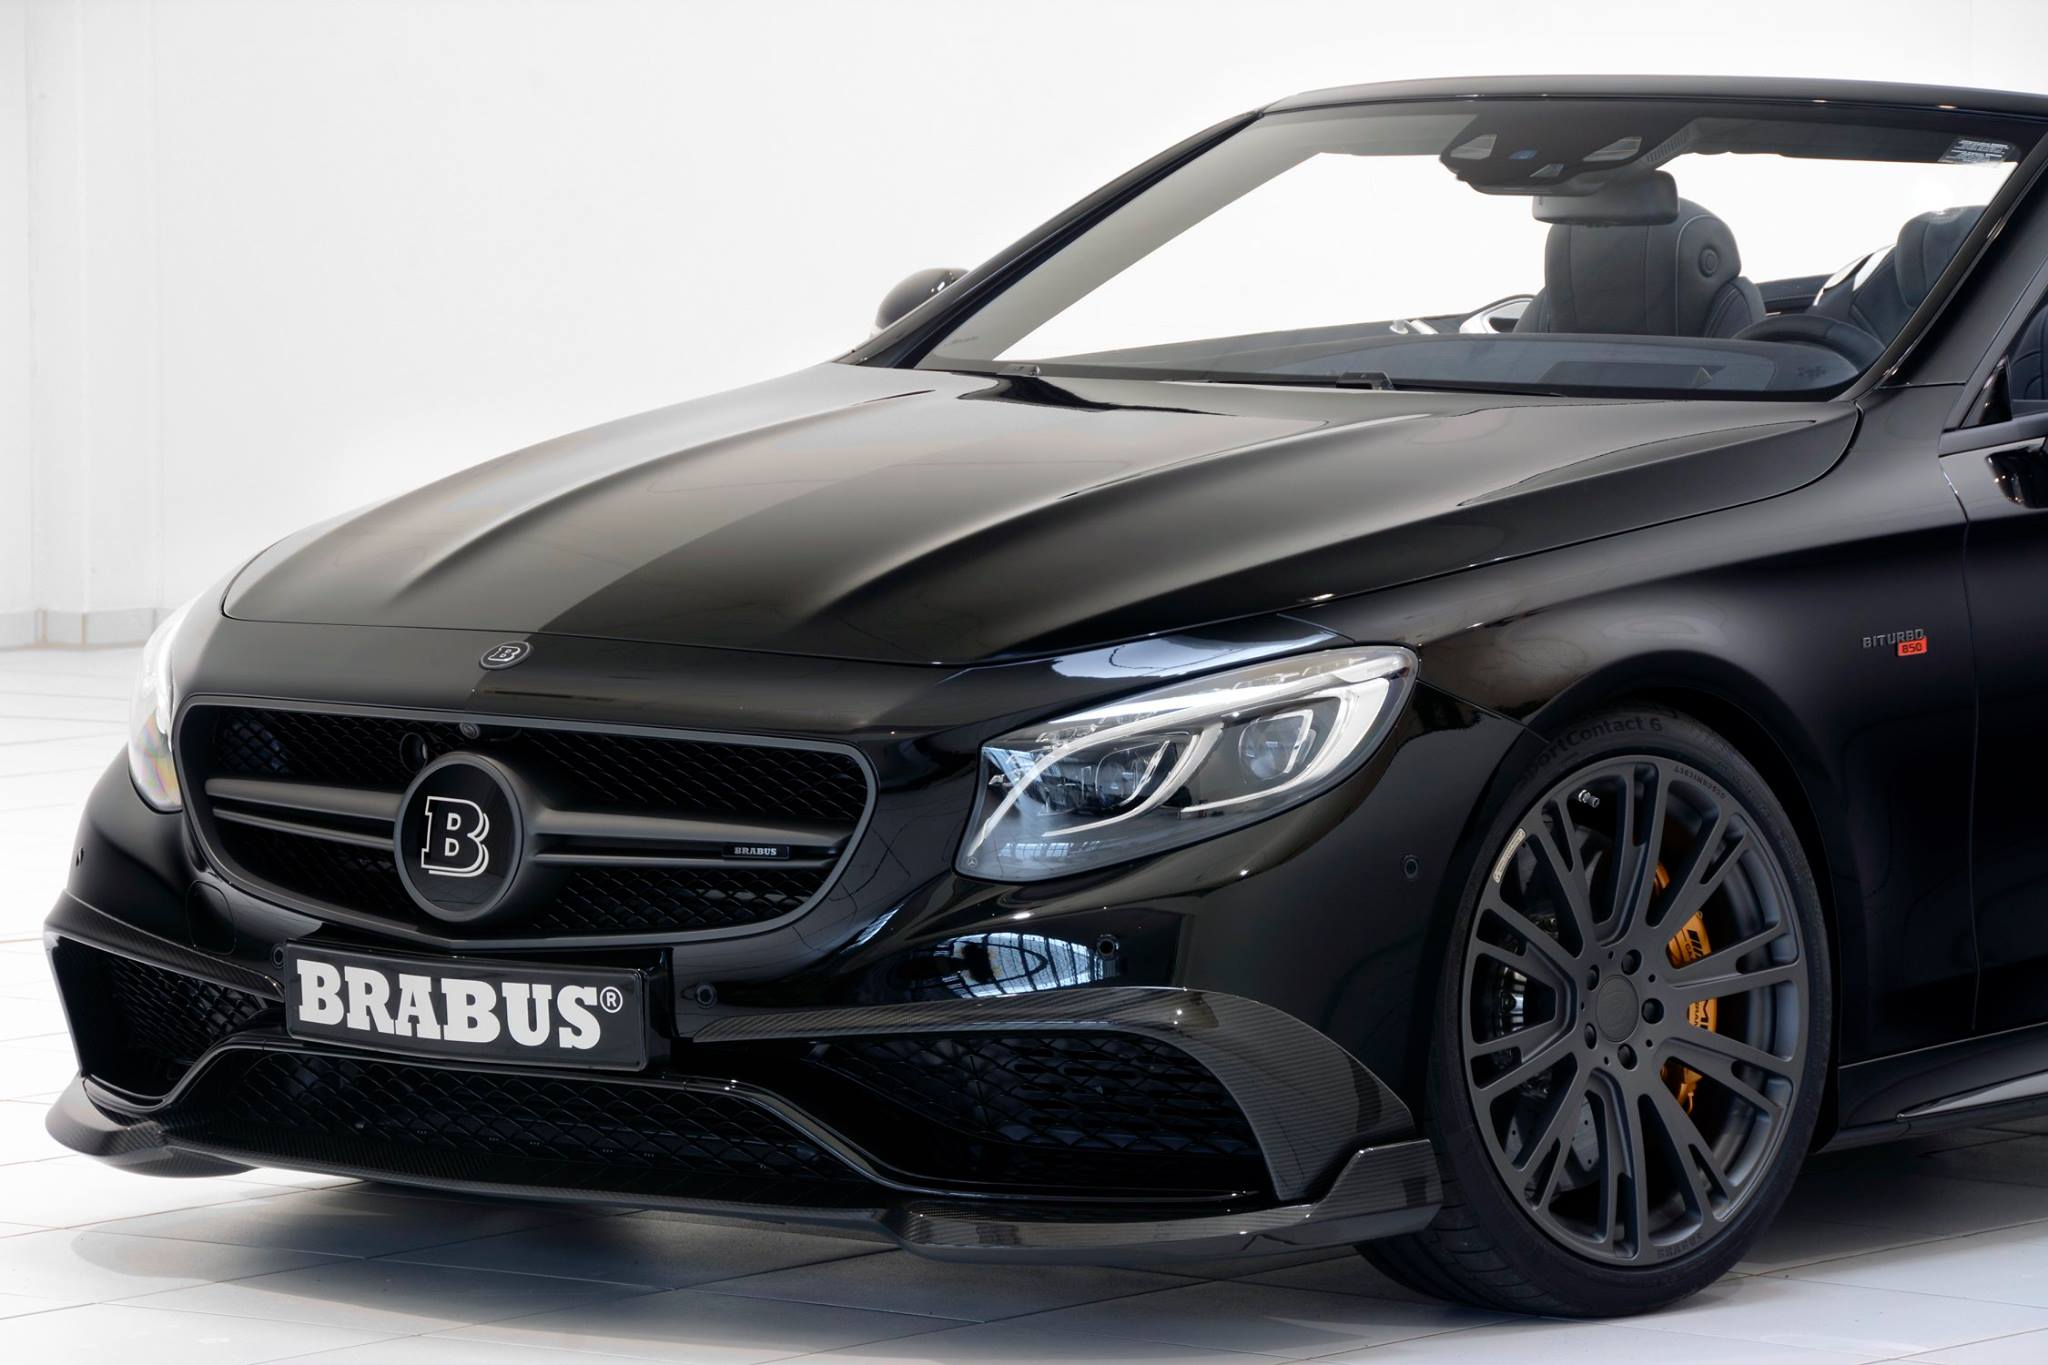 brabus 850 mercedes s class cabrio is more than an amg autoevolution. Black Bedroom Furniture Sets. Home Design Ideas